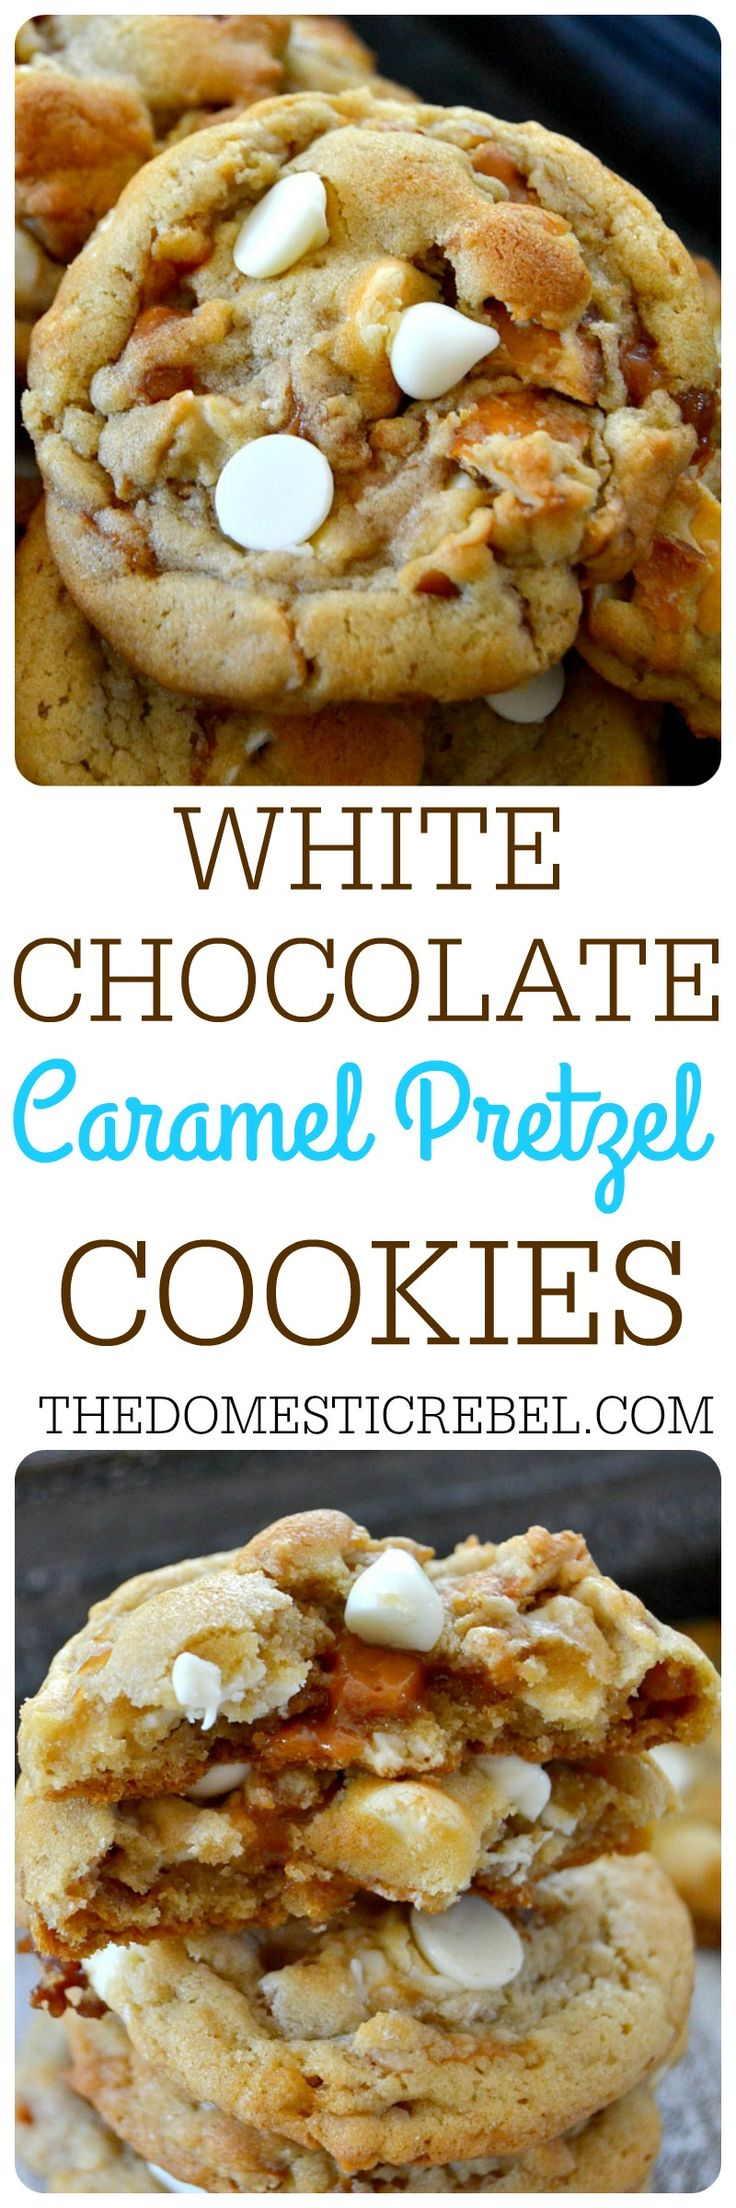 These White Chocolate Caramel Pretzel Cookies are soft & chewy and ...